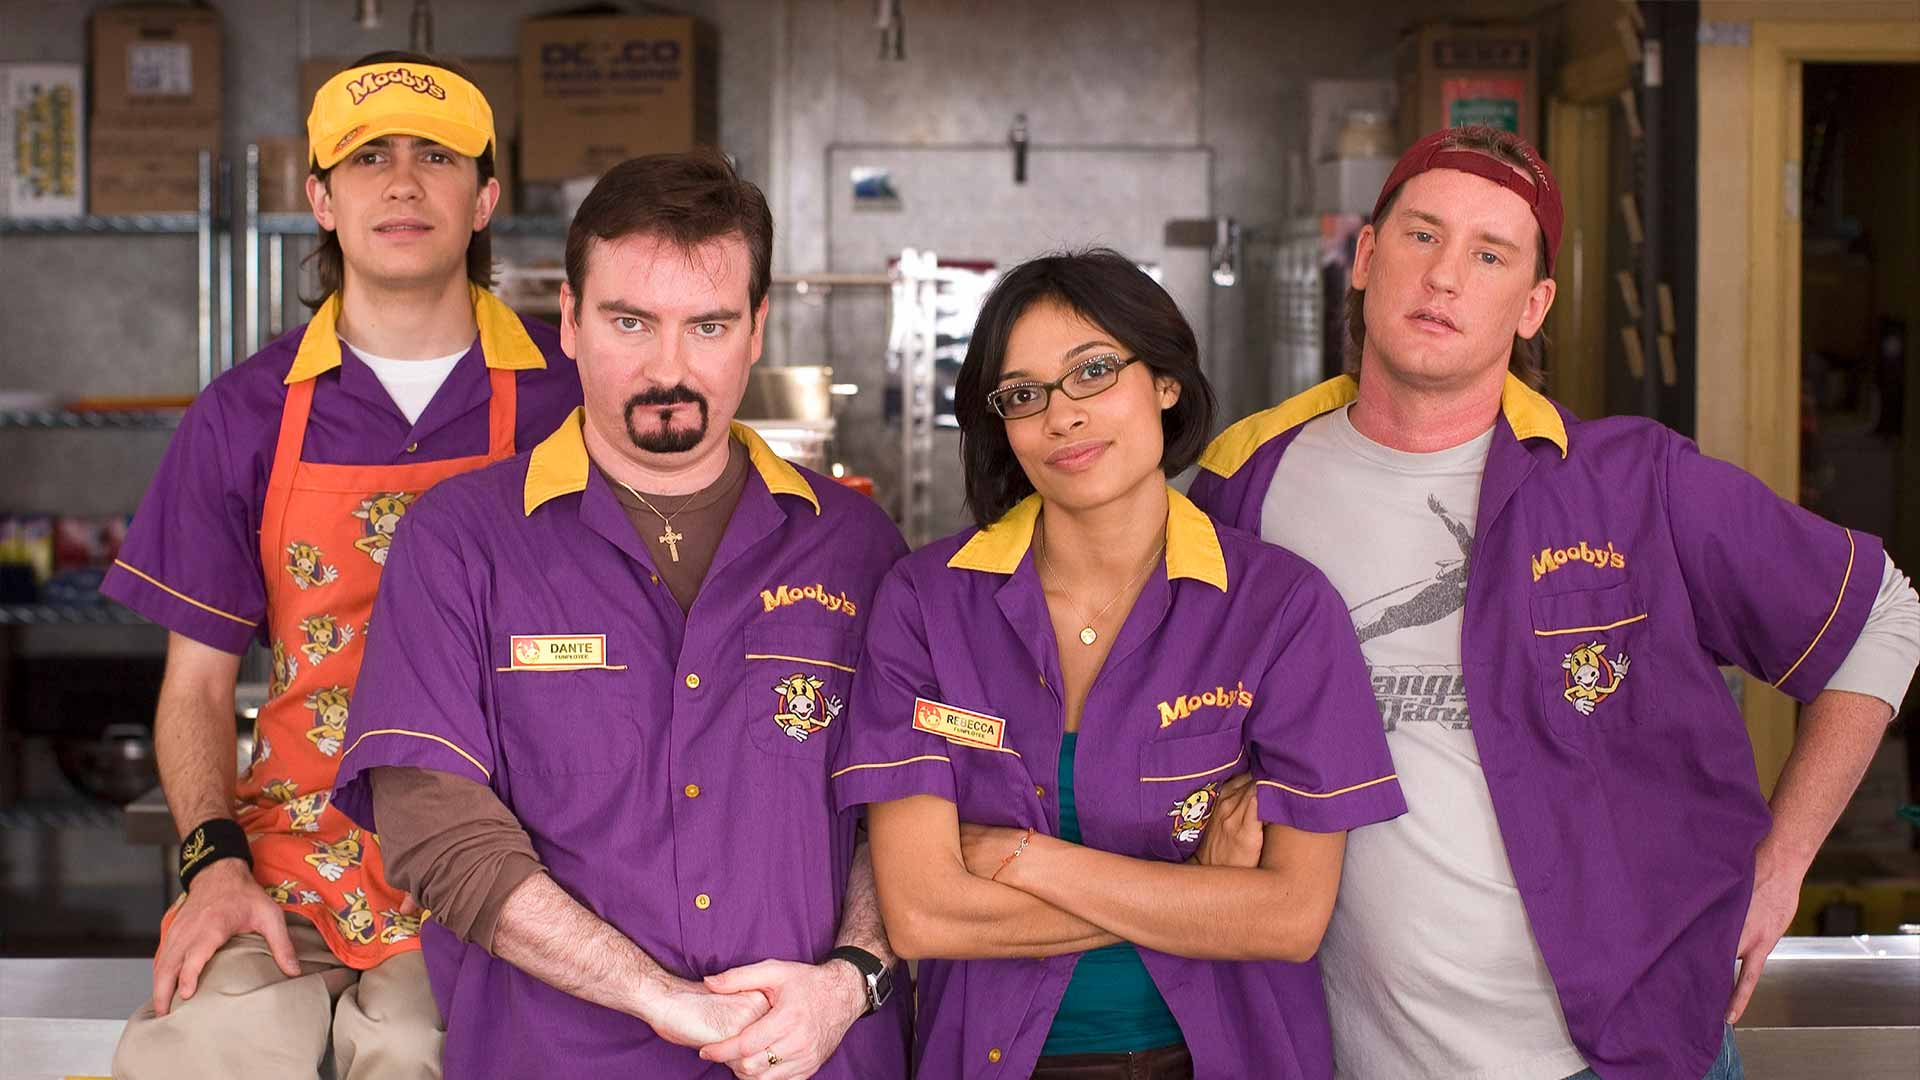 kevin-smith-says-clerks-3-isnt-happening-in-the-forseeable-future-social.jpg